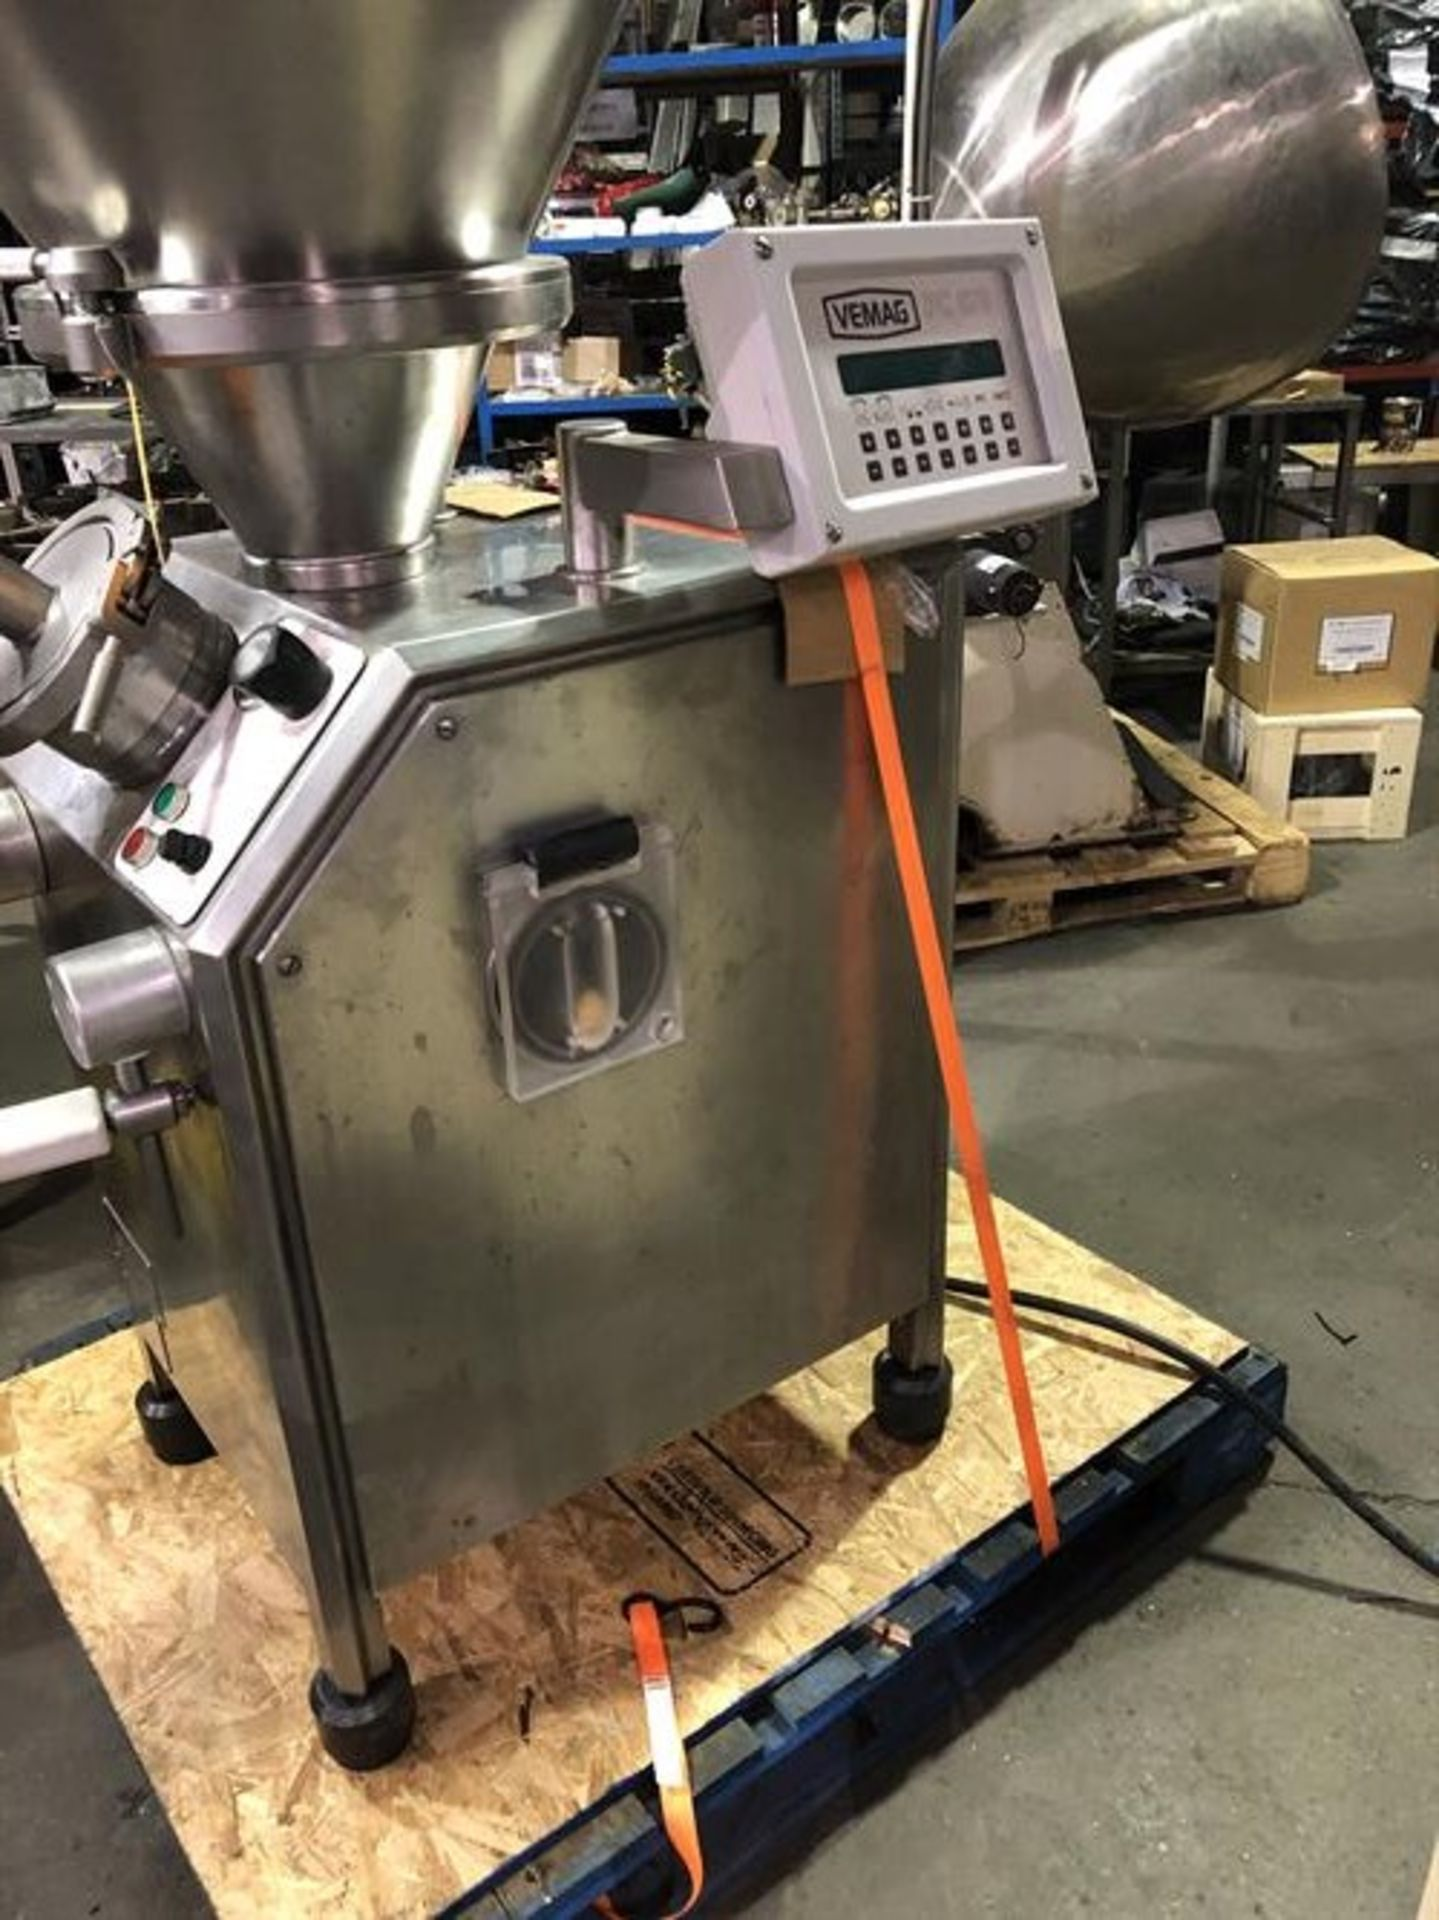 Vemag Robot 500 Stainless Steel Vacuum Stuffer - Machine has been completely reconditioned - PC - Image 19 of 31